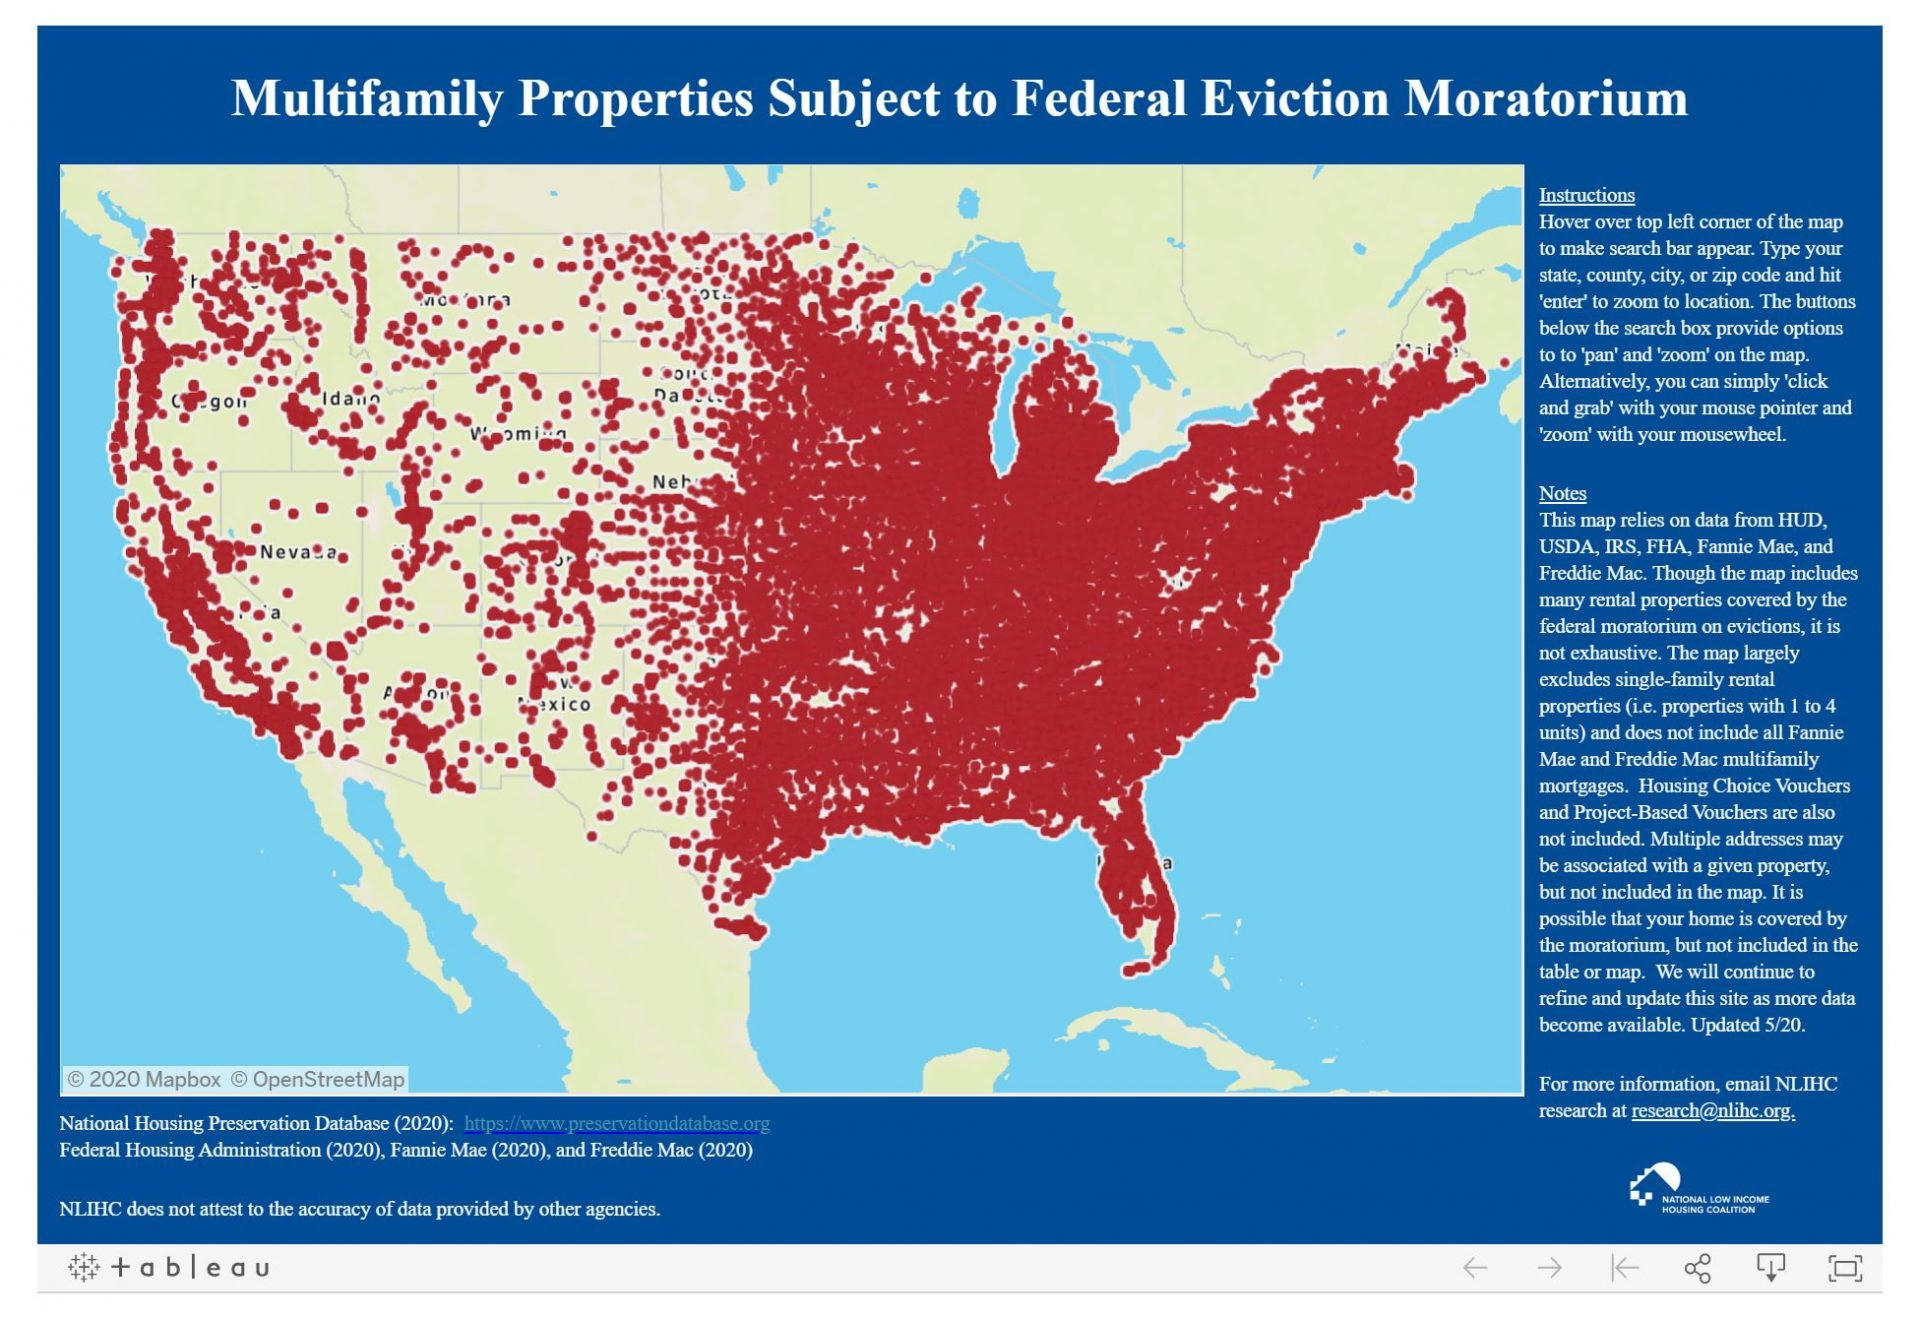 NLIHC Creates Database, Map of MultiFamily Properties Subject to Federal Eviction Moratorium